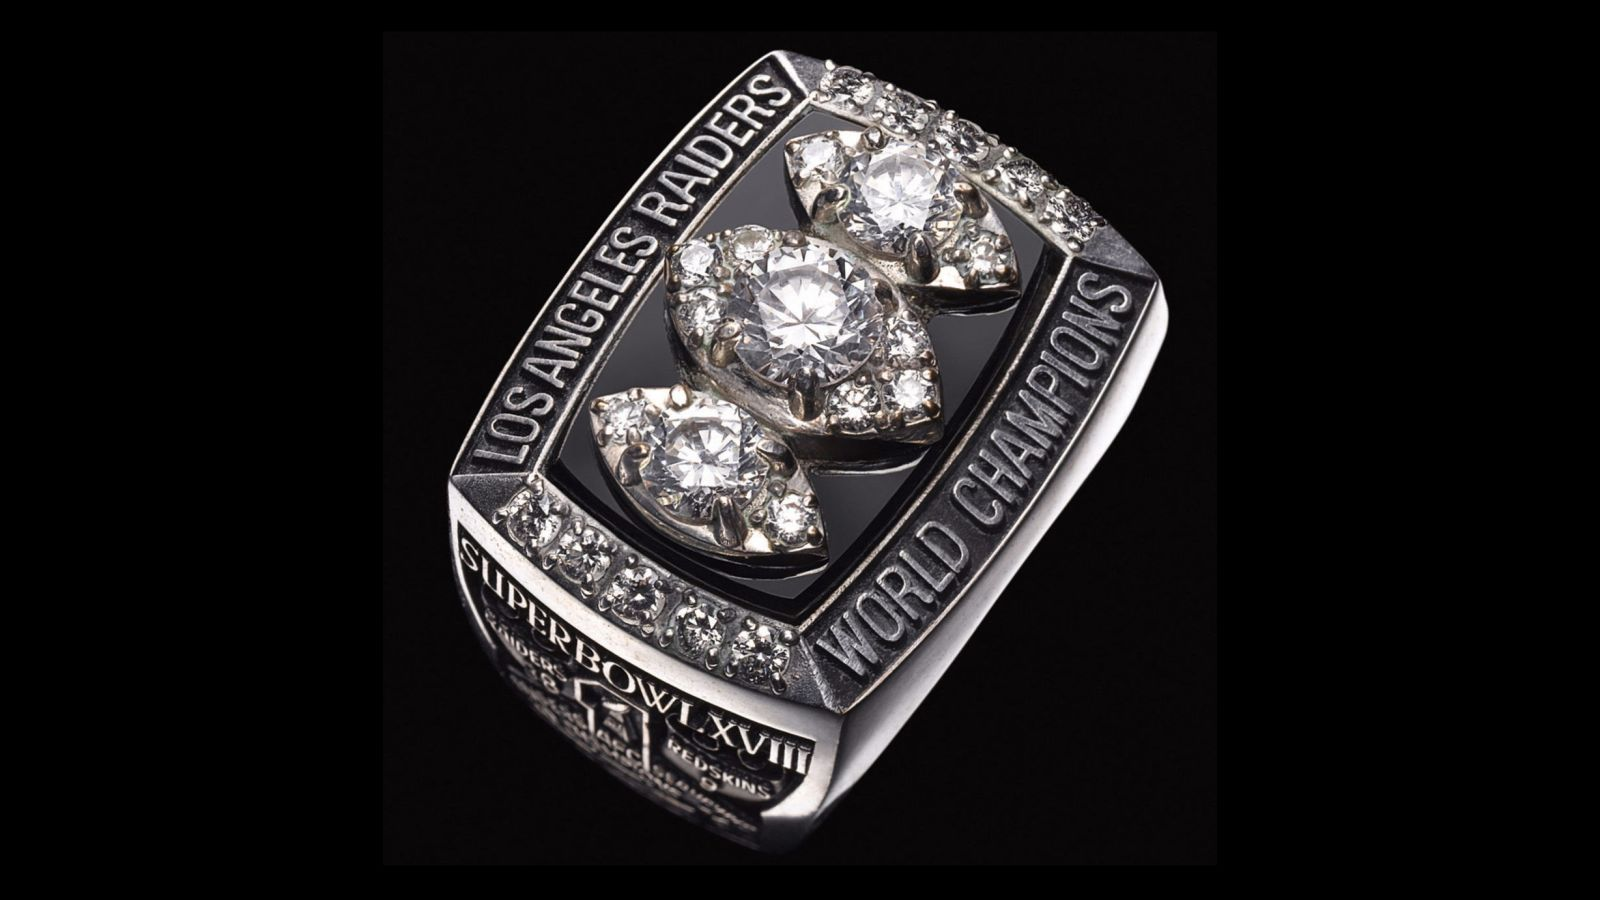 1983 Oakland Raiders Super Bowl Championship Ring